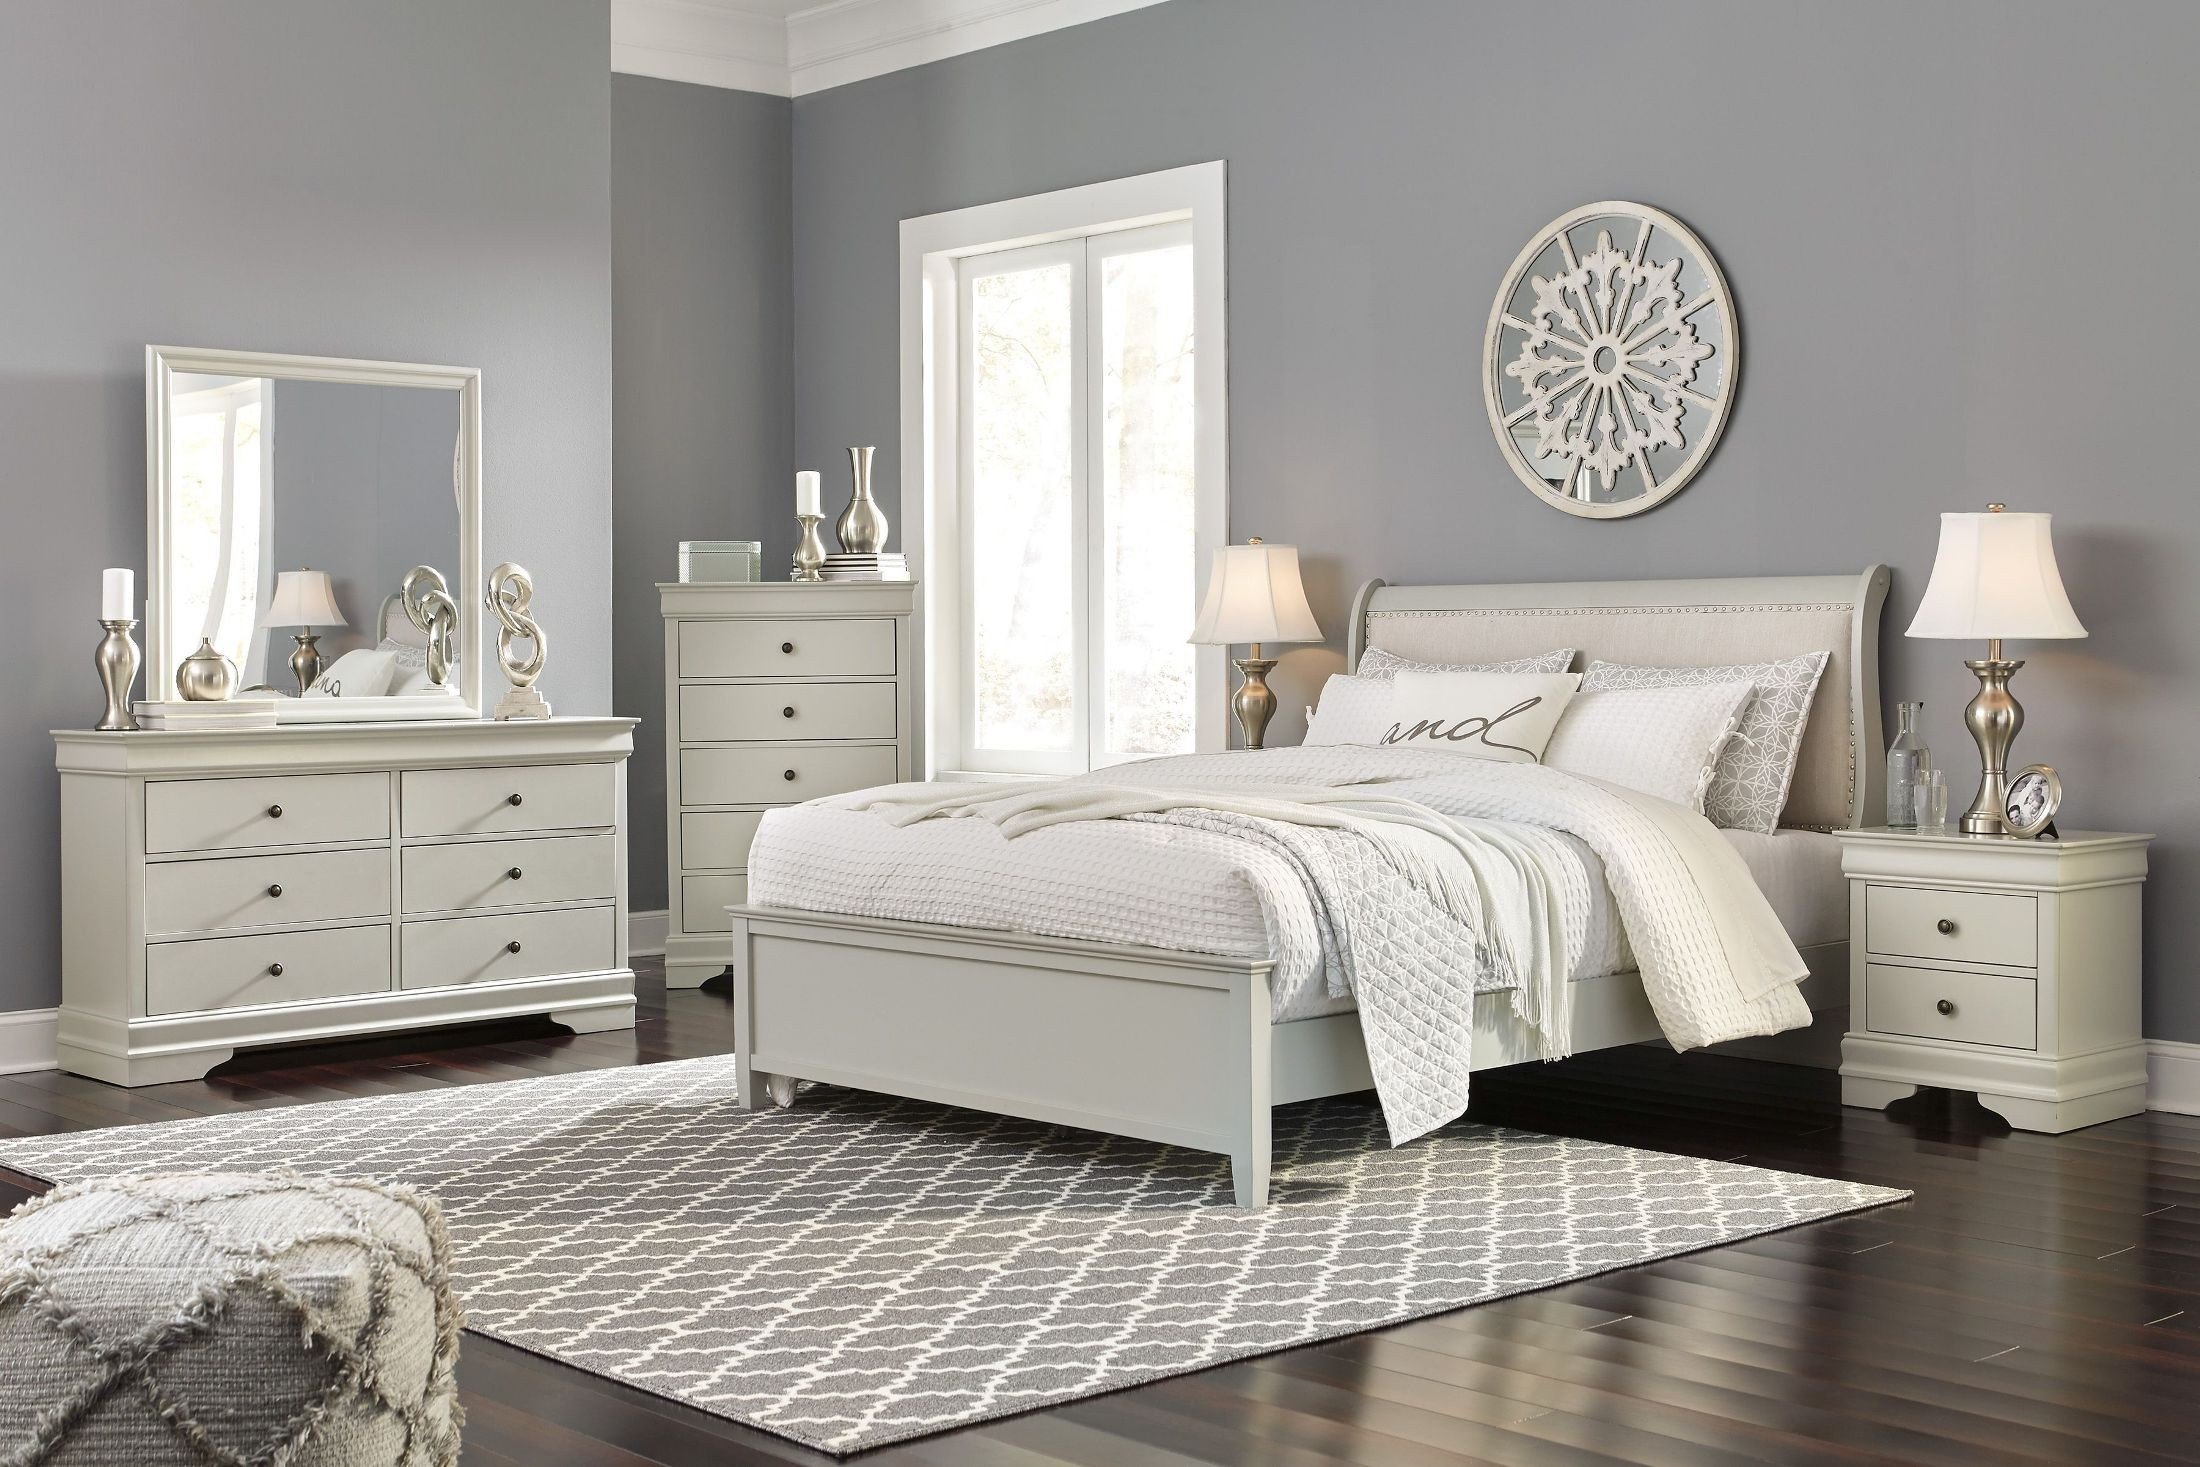 Mirror Bedroom Furniture Set Lovely Emma Mason Signature Jarred 5 Piece Sleigh Bedroom Set In Gray